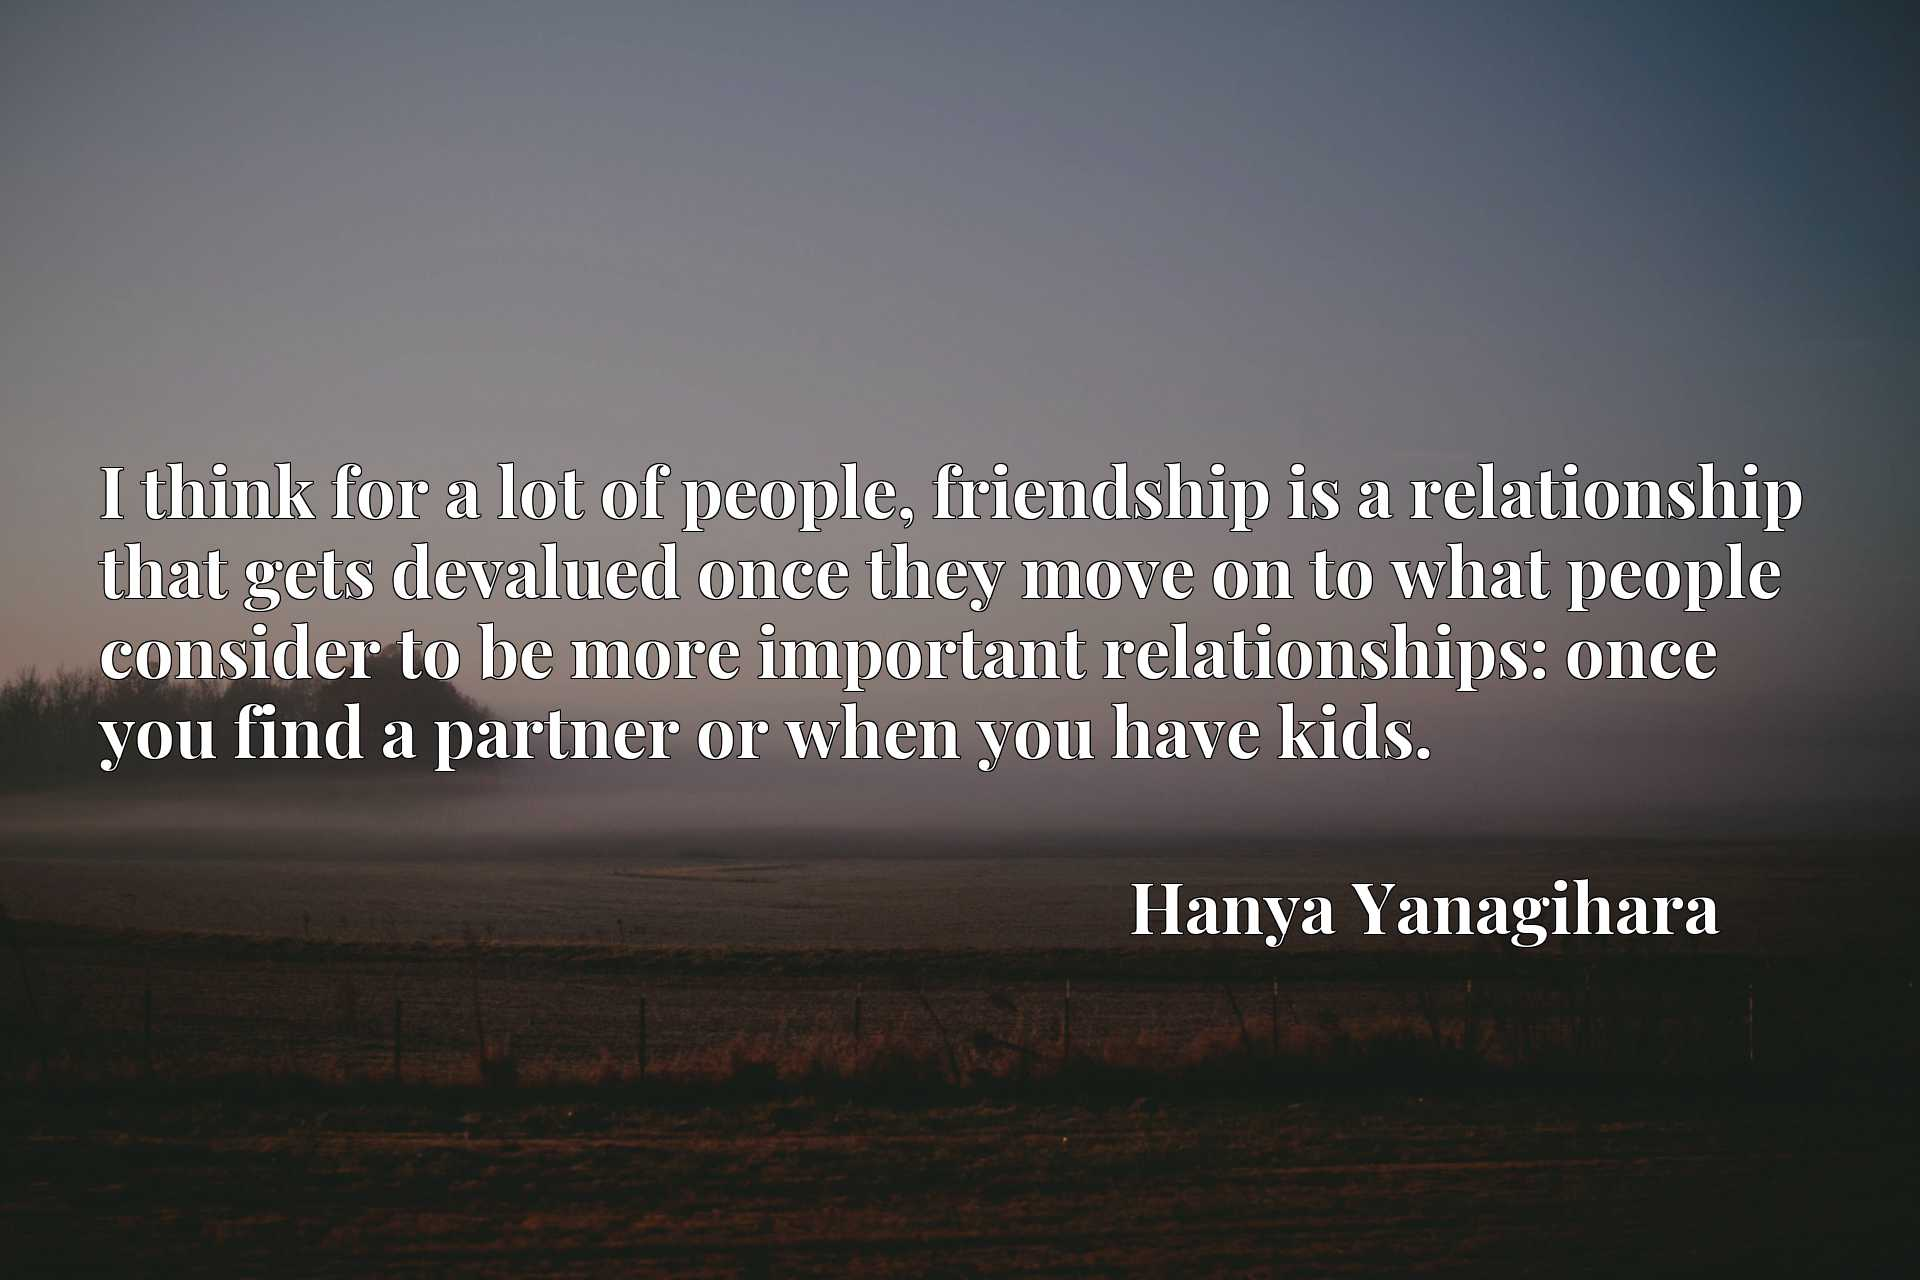 I think for a lot of people, friendship is a relationship that gets devalued once they move on to what people consider to be more important relationships: once you find a partner or when you have kids.